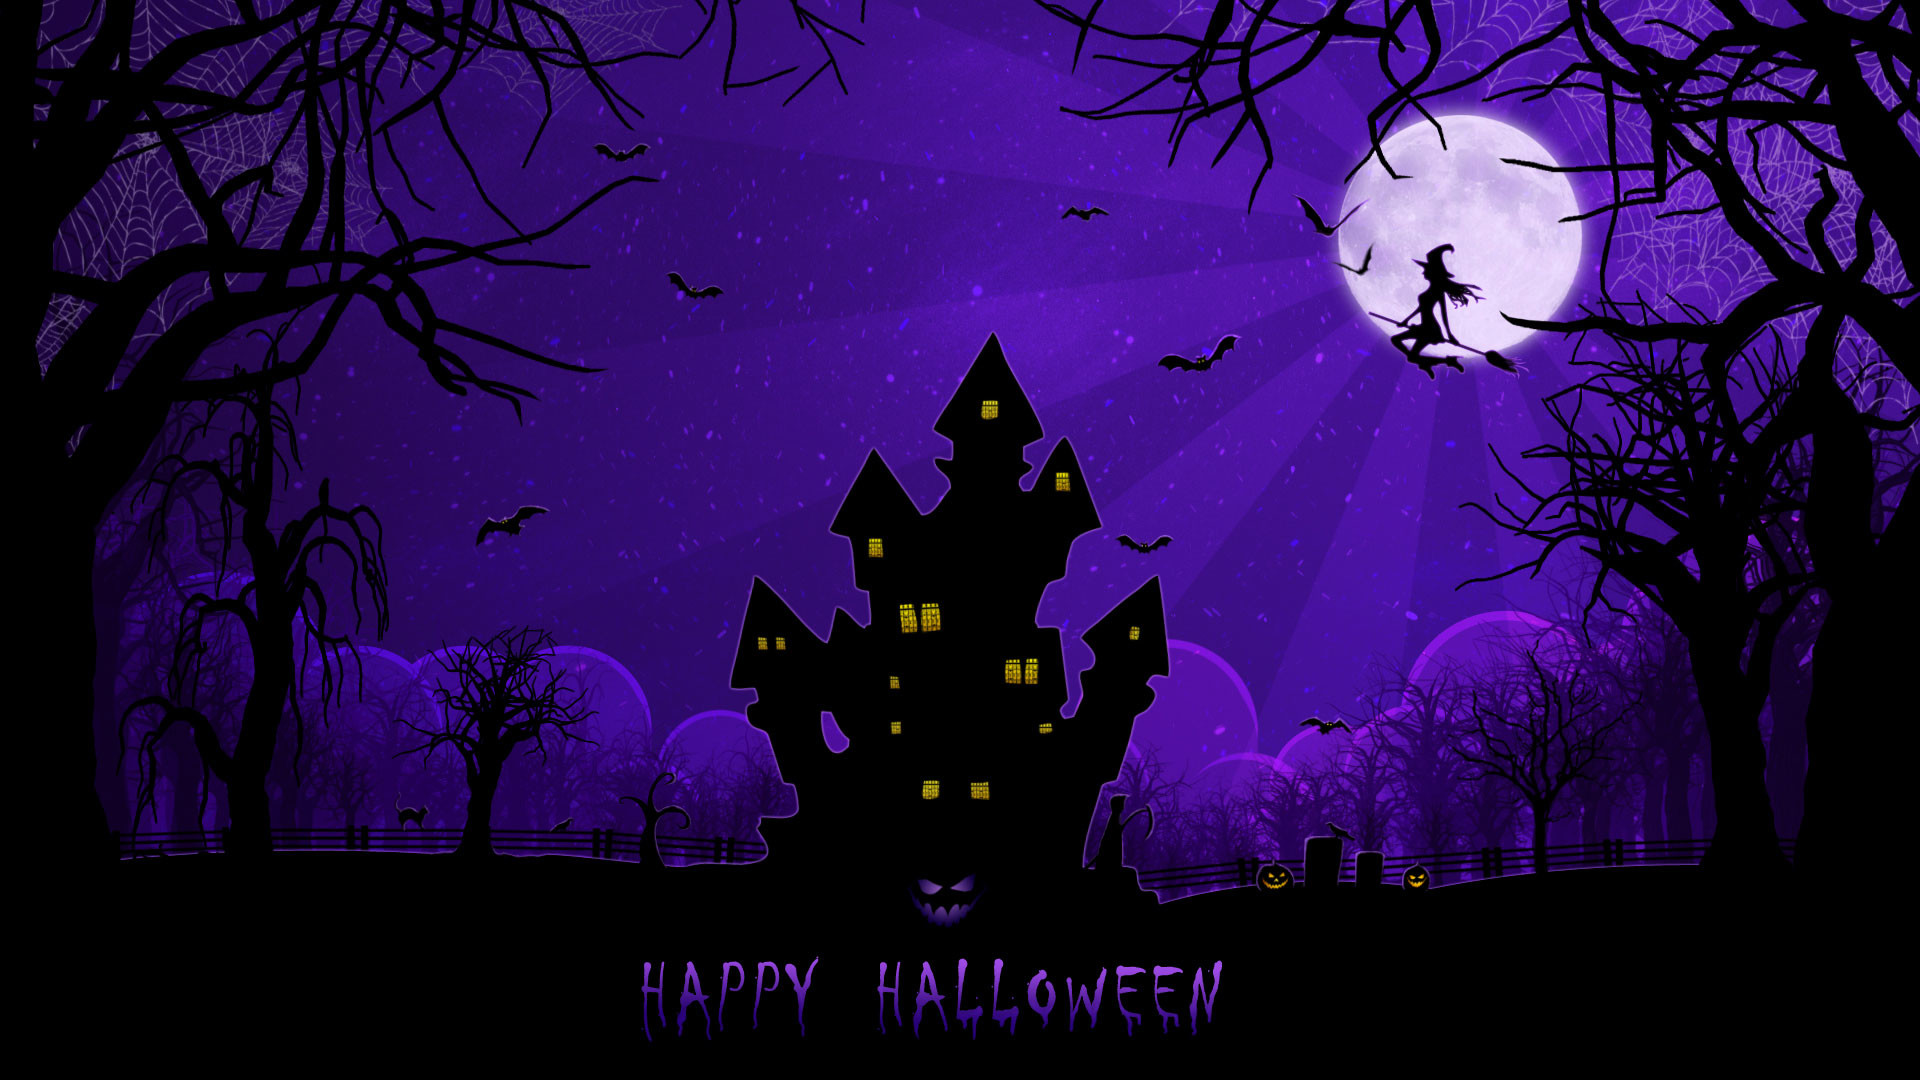 1920x1080 Free Scary Halloween Backgrounds & Wallpaper Collection 2014